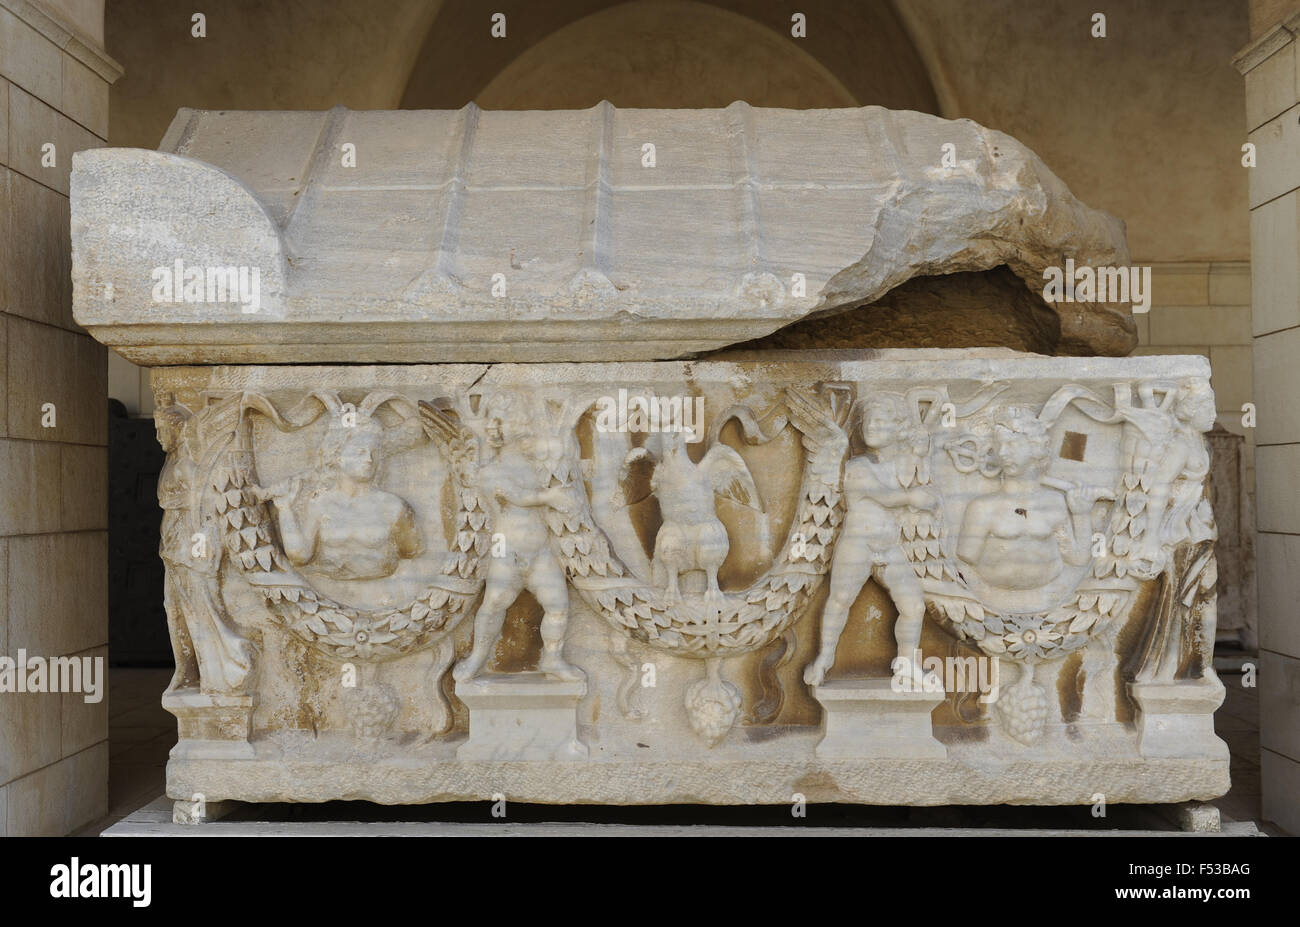 Garland sarcophagus. Marble. Tel Mevorah. Roman period, 3rd century CE. Decorated with floral garlands and deities. - Stock Image